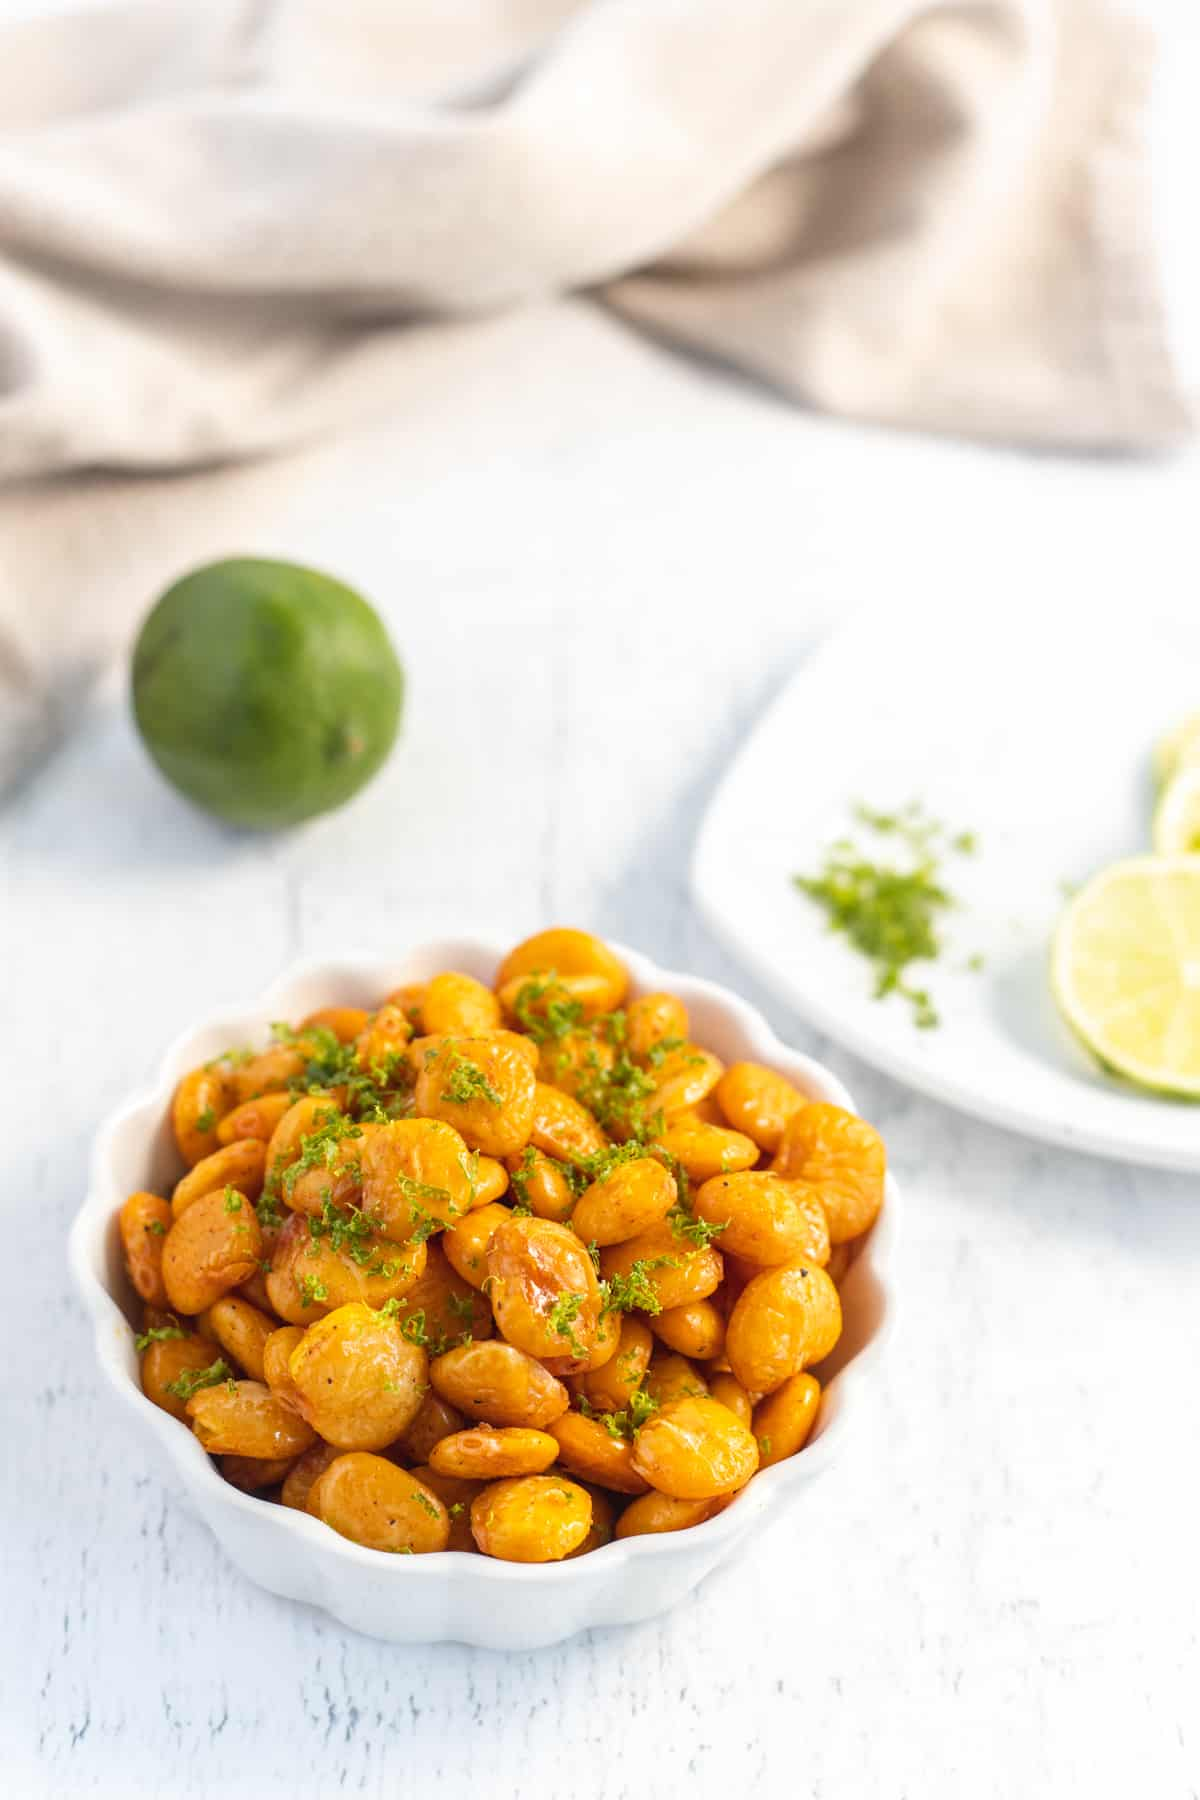 Cooked Lupini Beans with Lime Zest on Top